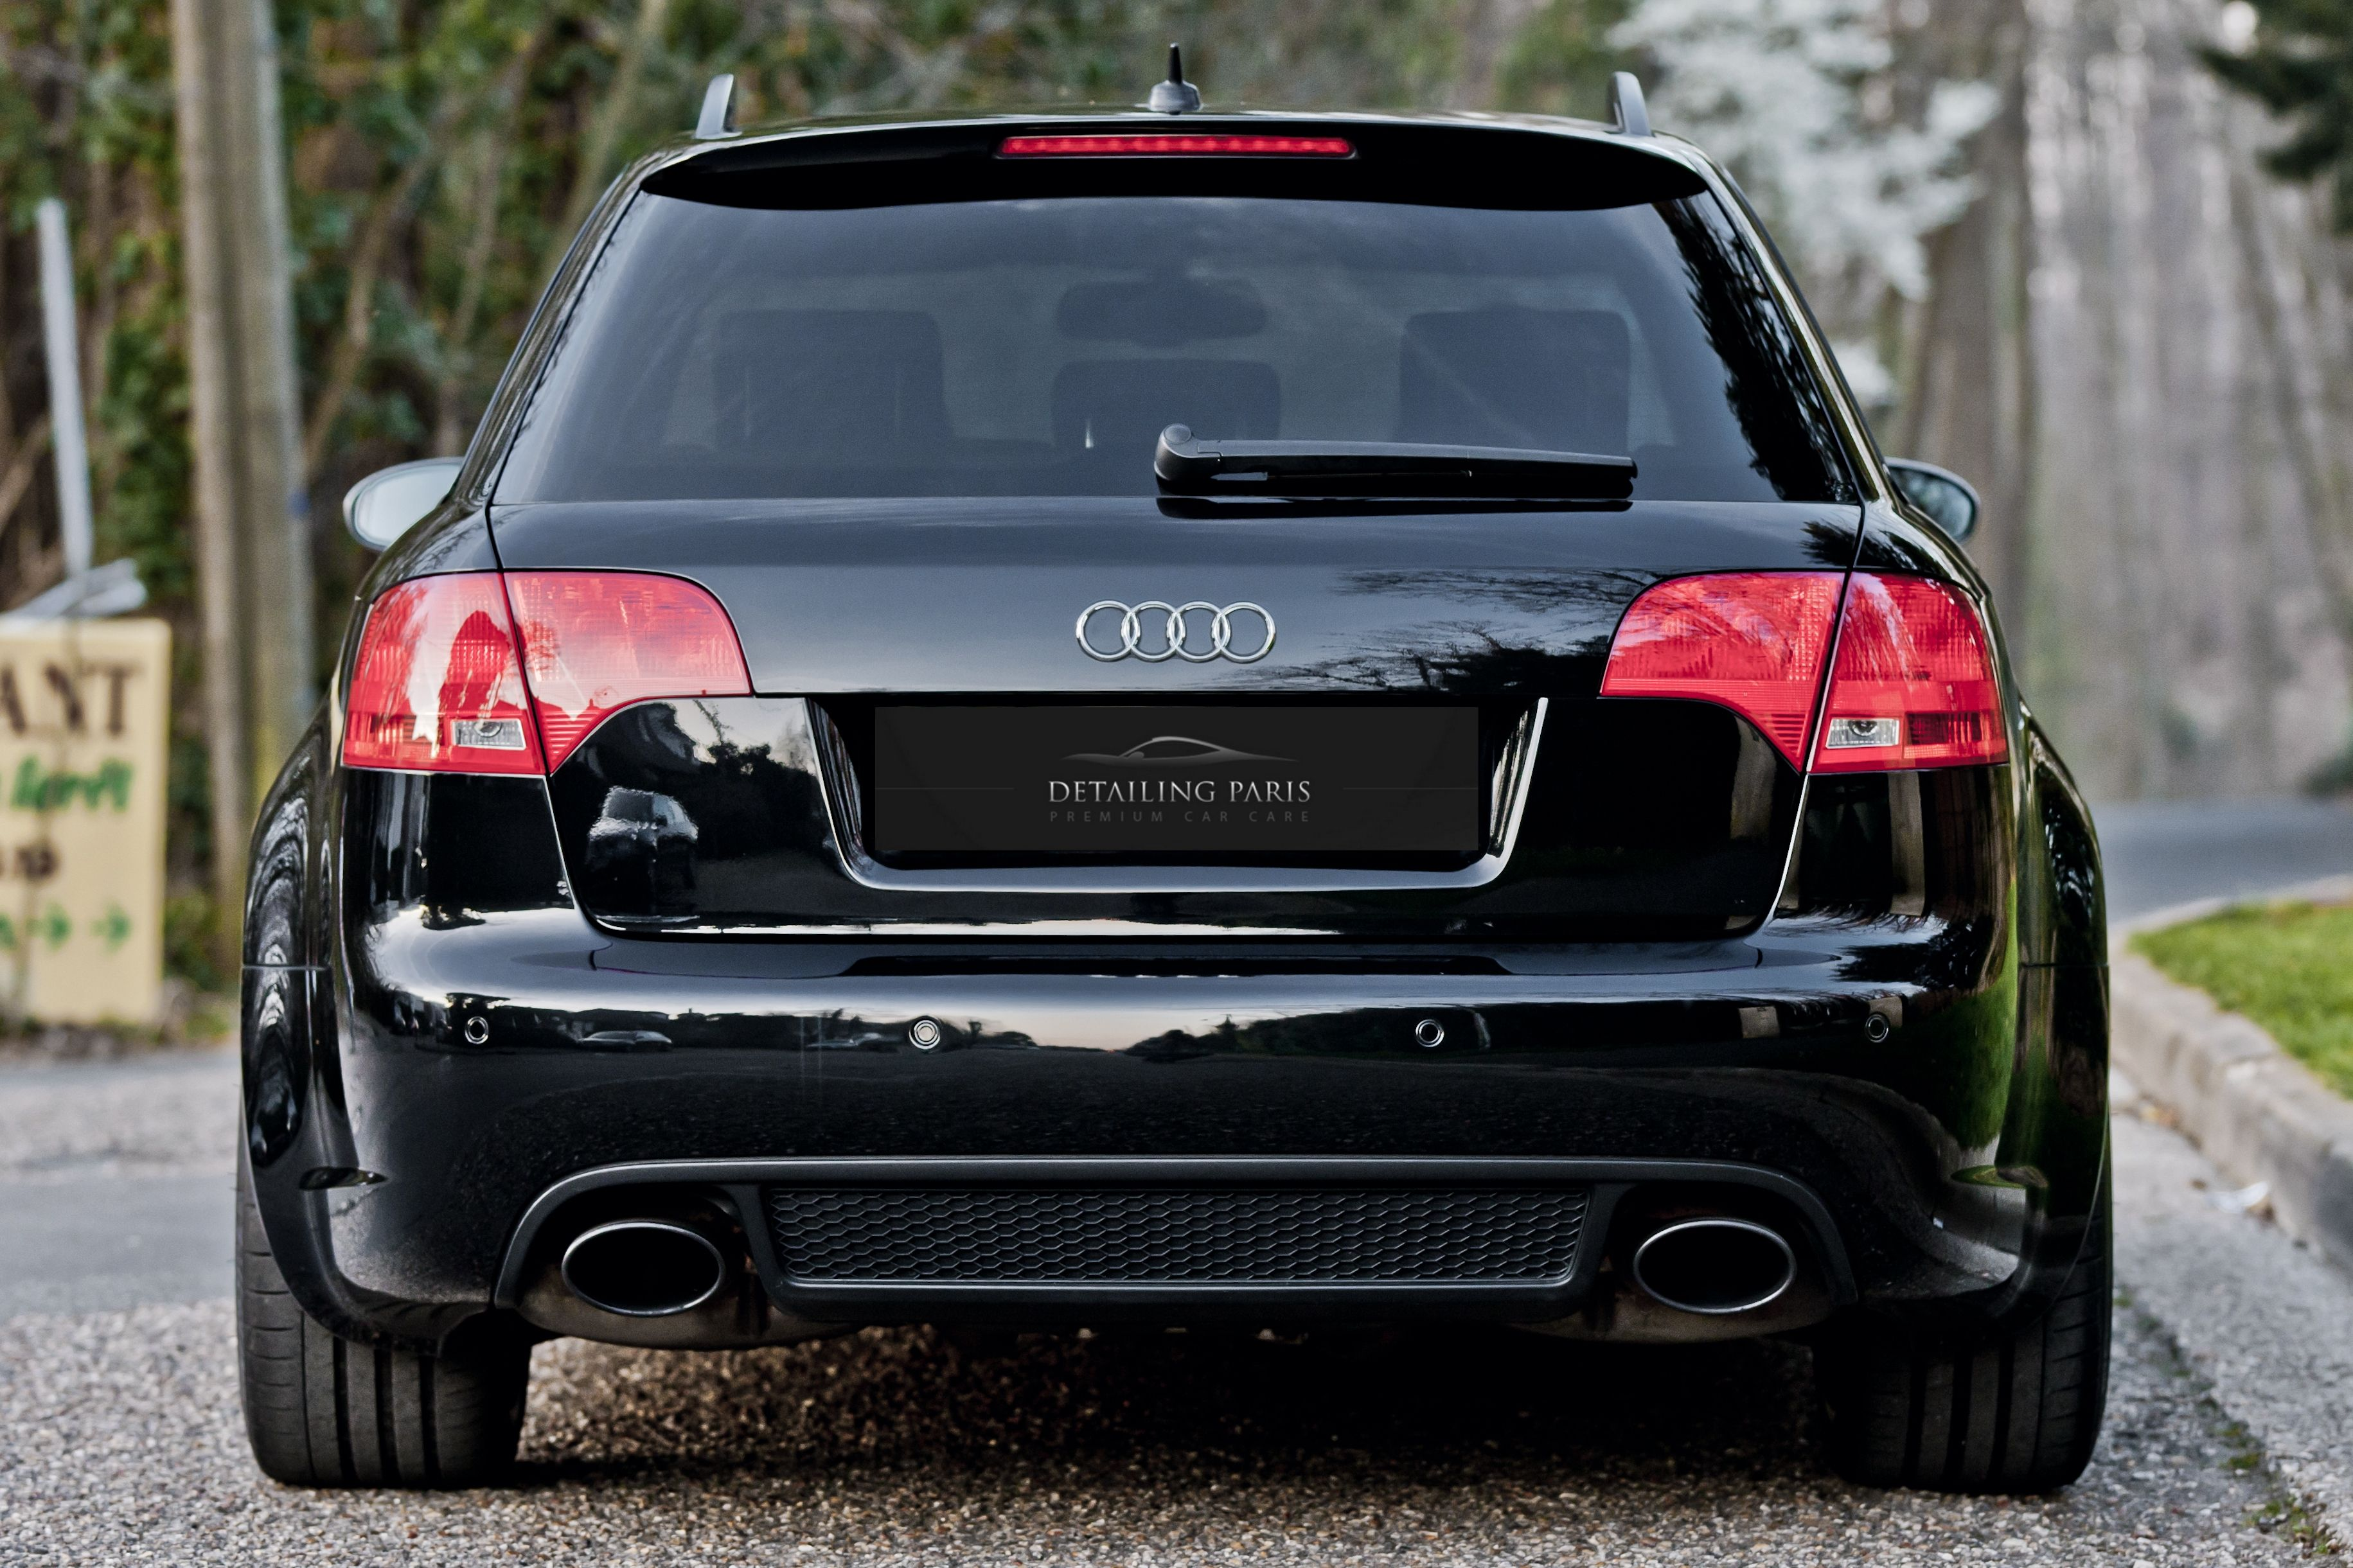 audi rs4 b7 black edition detailing paris mymotors suv pinterest audi rs4 and cars. Black Bedroom Furniture Sets. Home Design Ideas